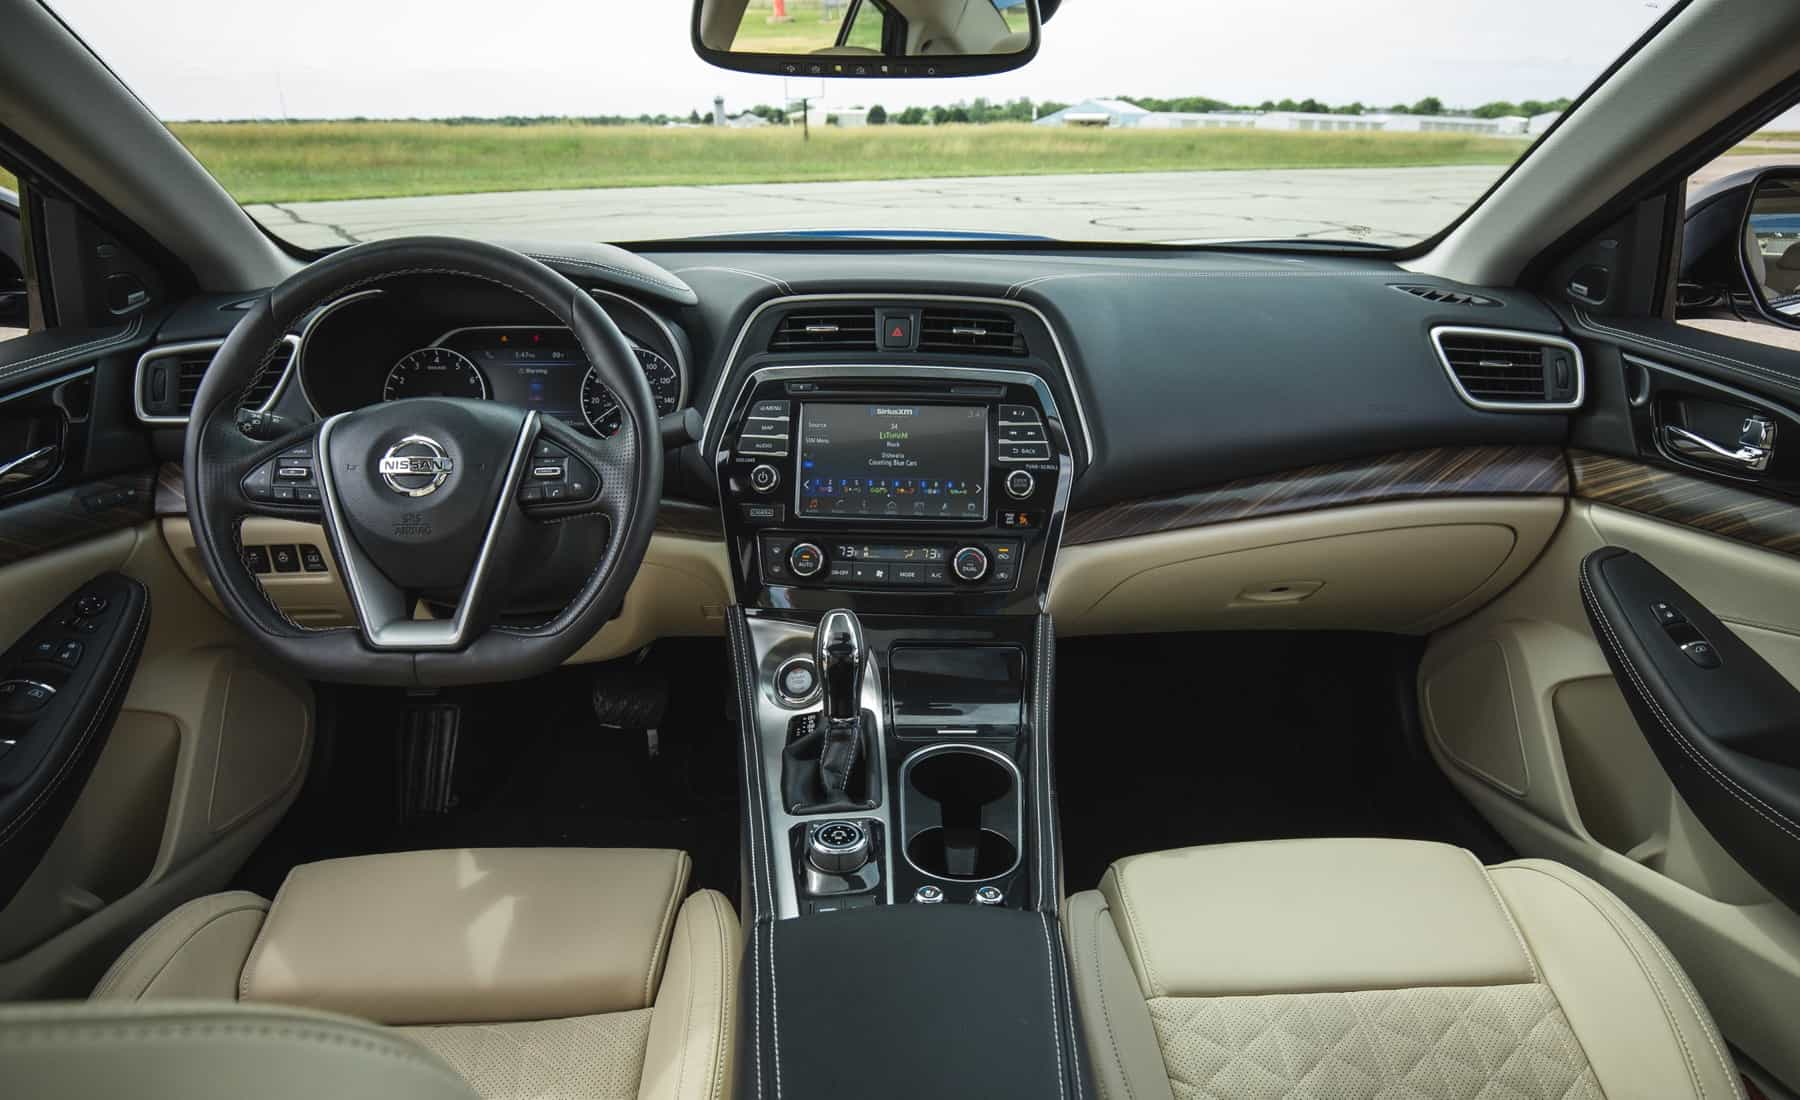 2017 Nissan Maxima Interior (Photo 13 of 40)